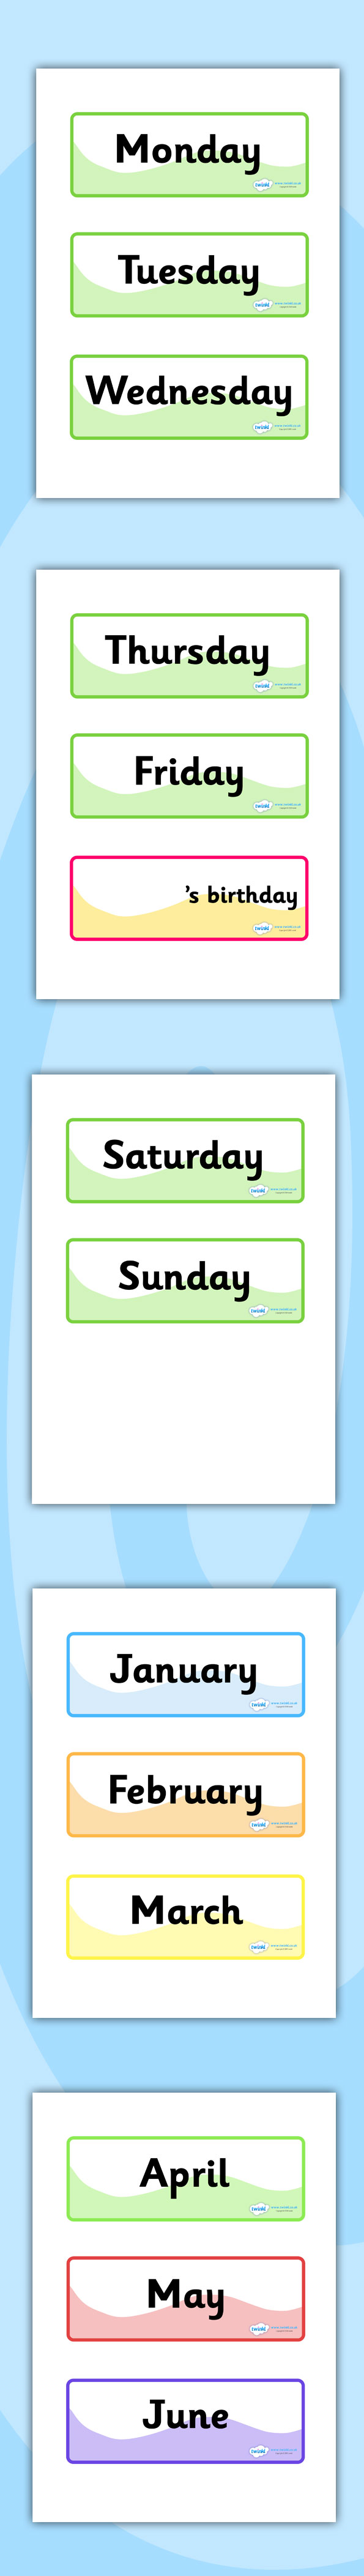 Calendar Ideas Twinkl : Twinkl resources gt days of the week months year